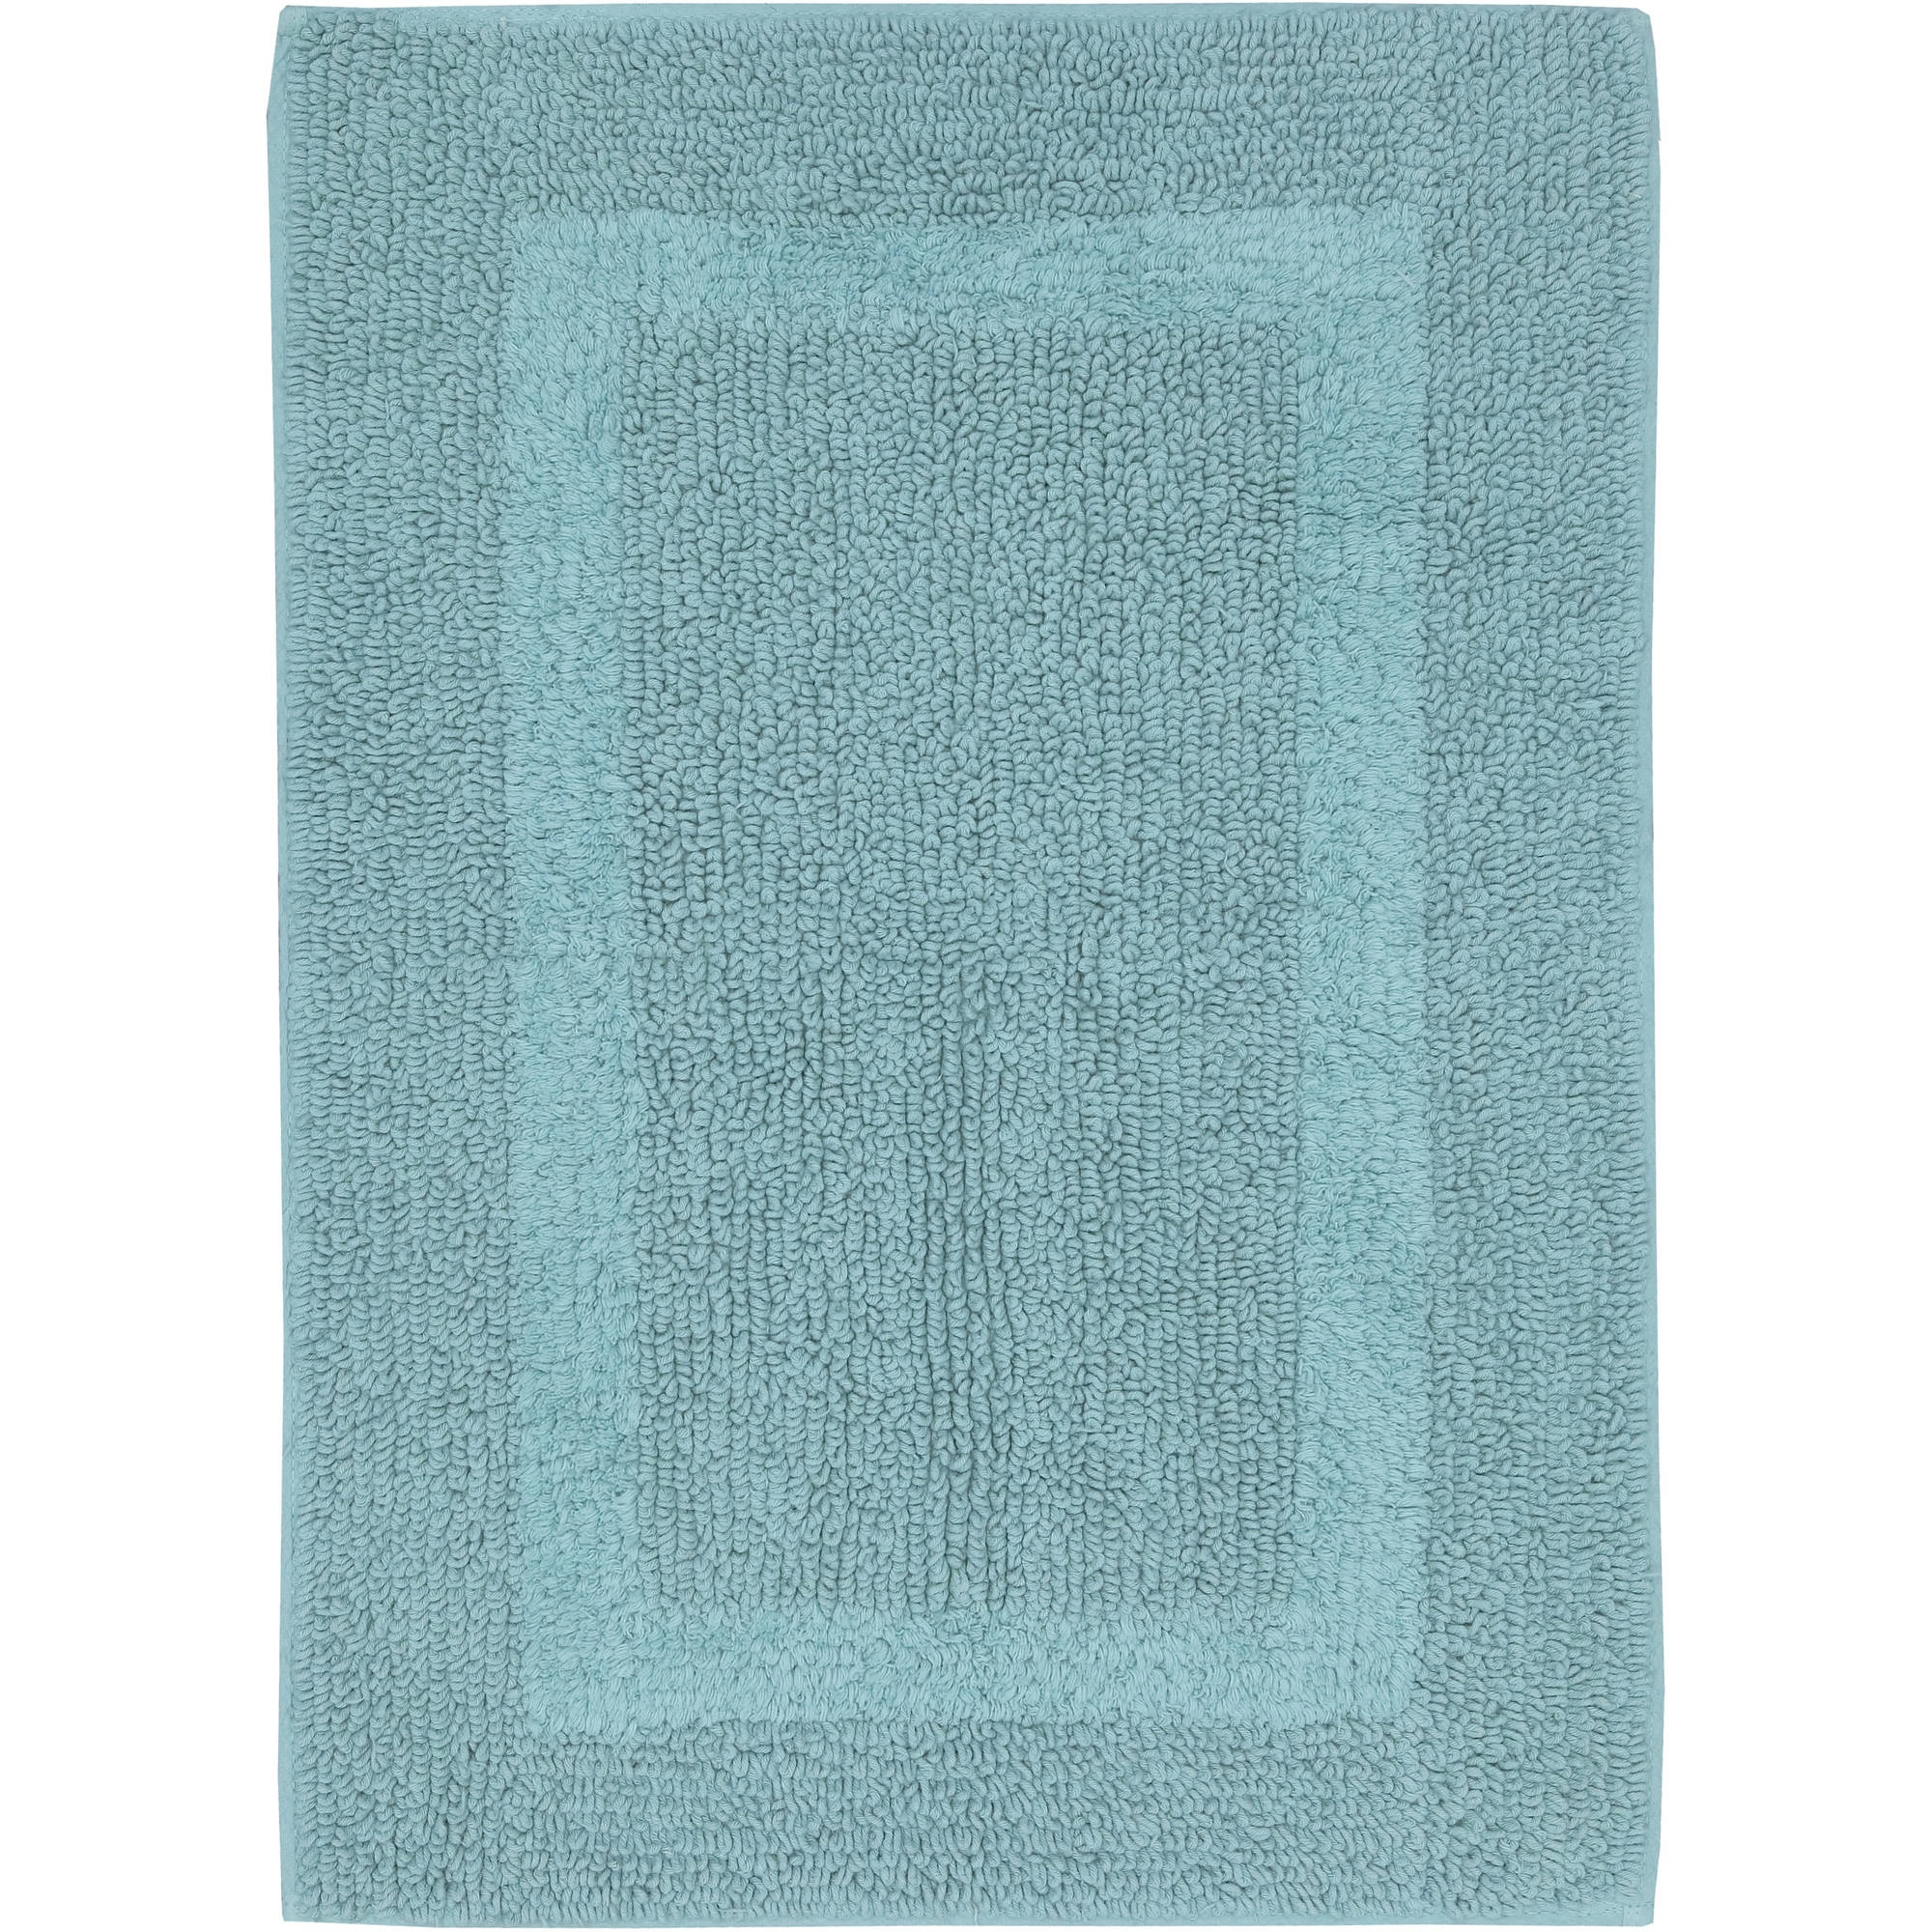 Cotton Bathroom Throw Rugs